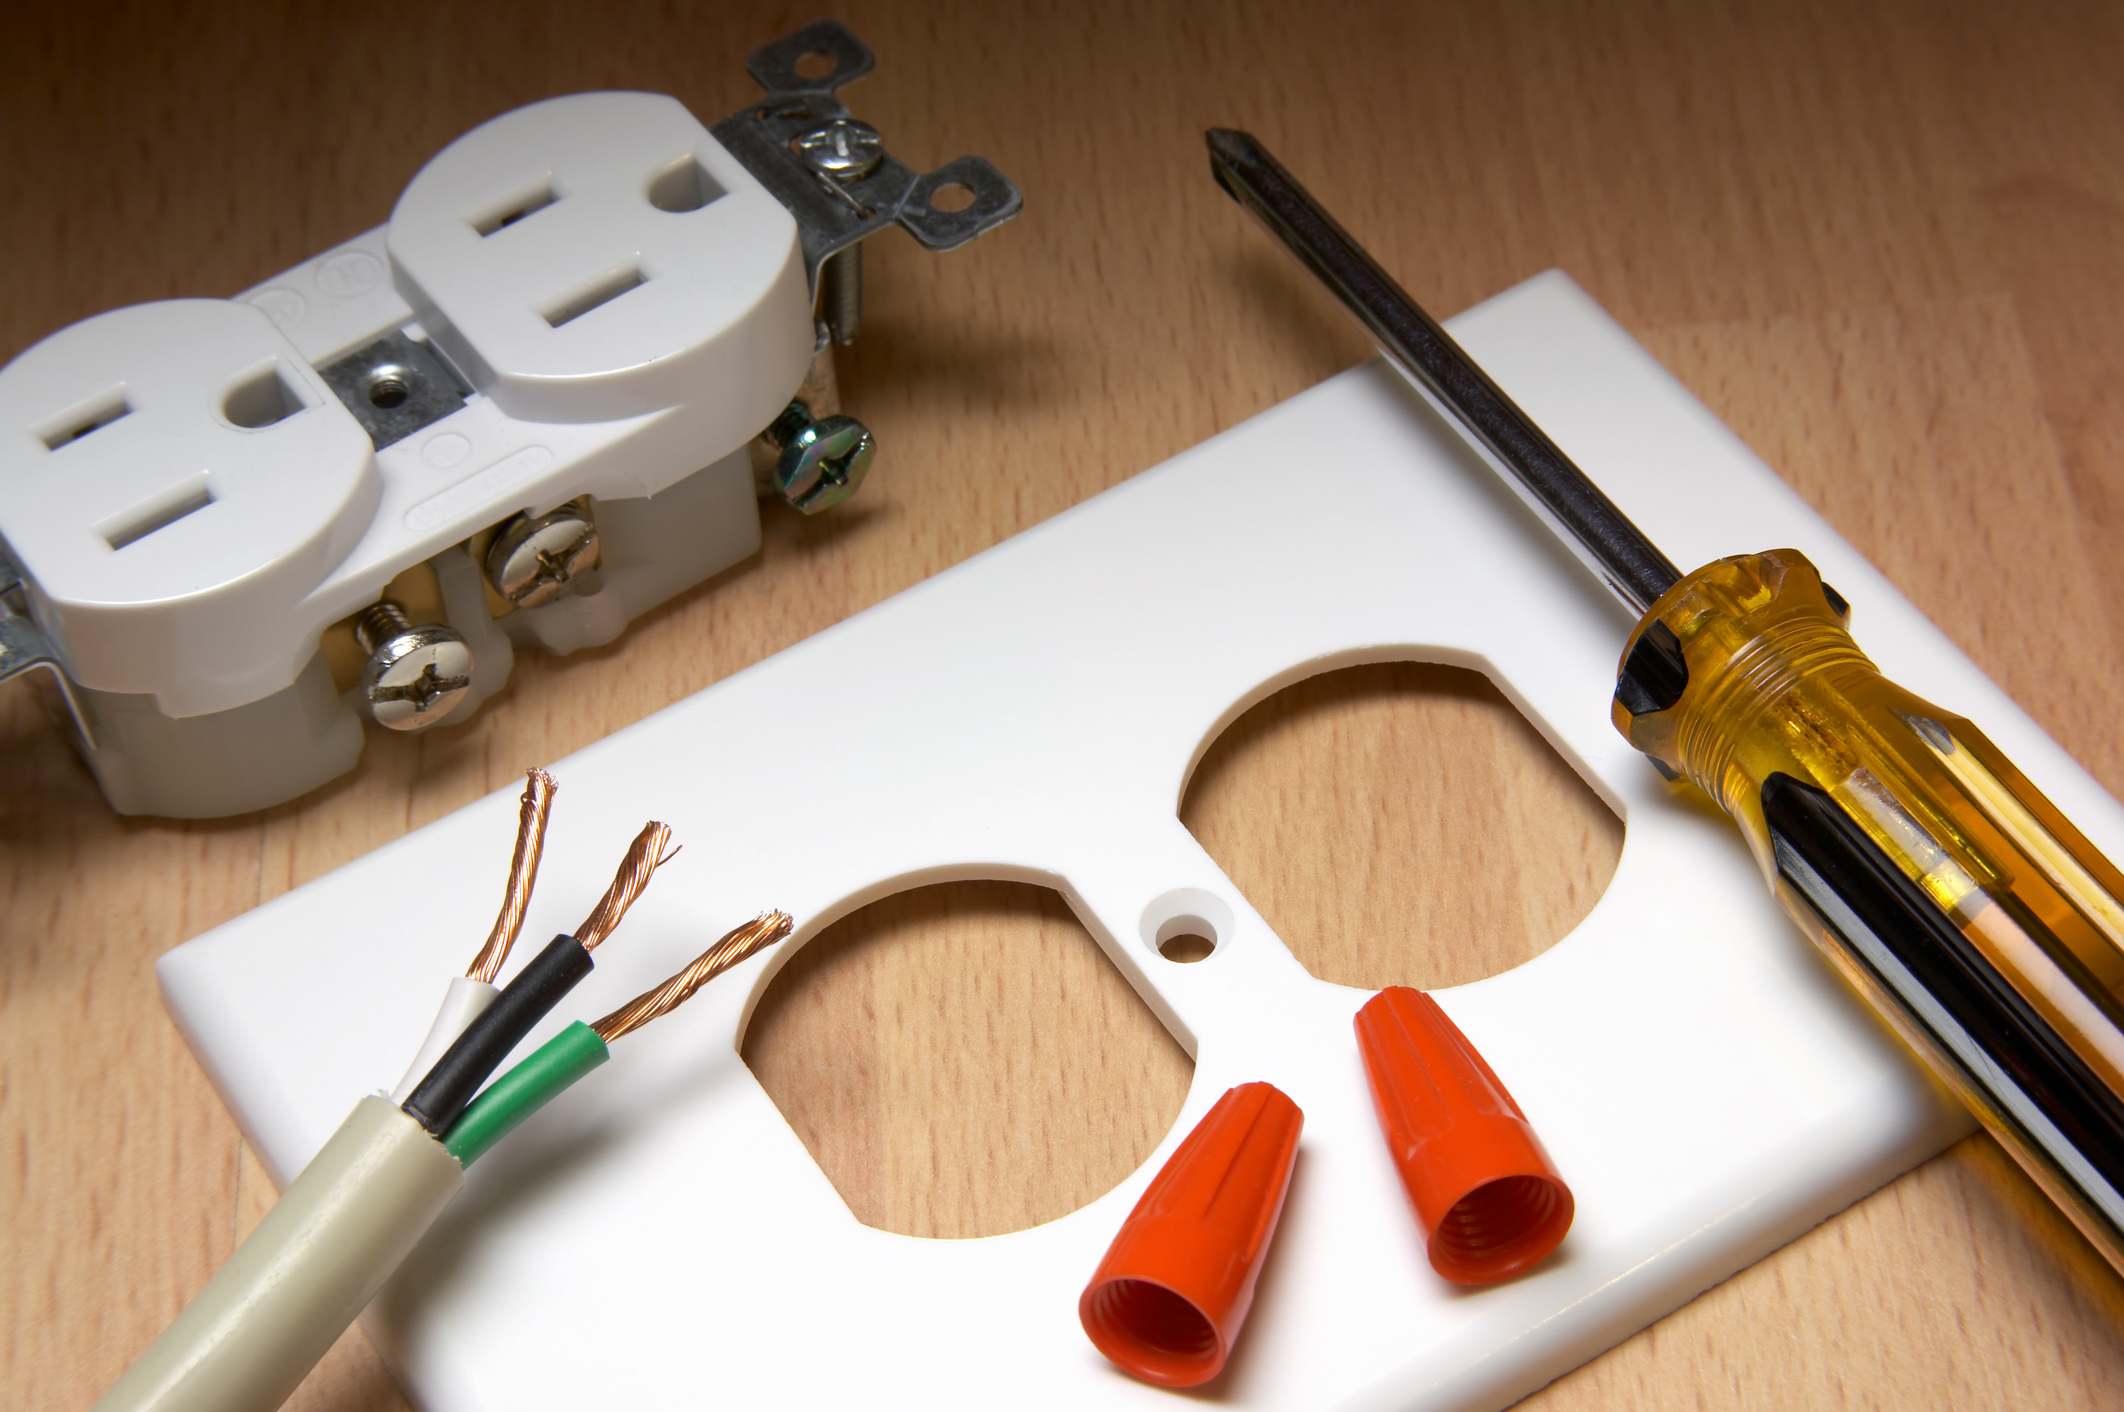 American electrical outlet and cover plate, with screwdriver and wire nuts